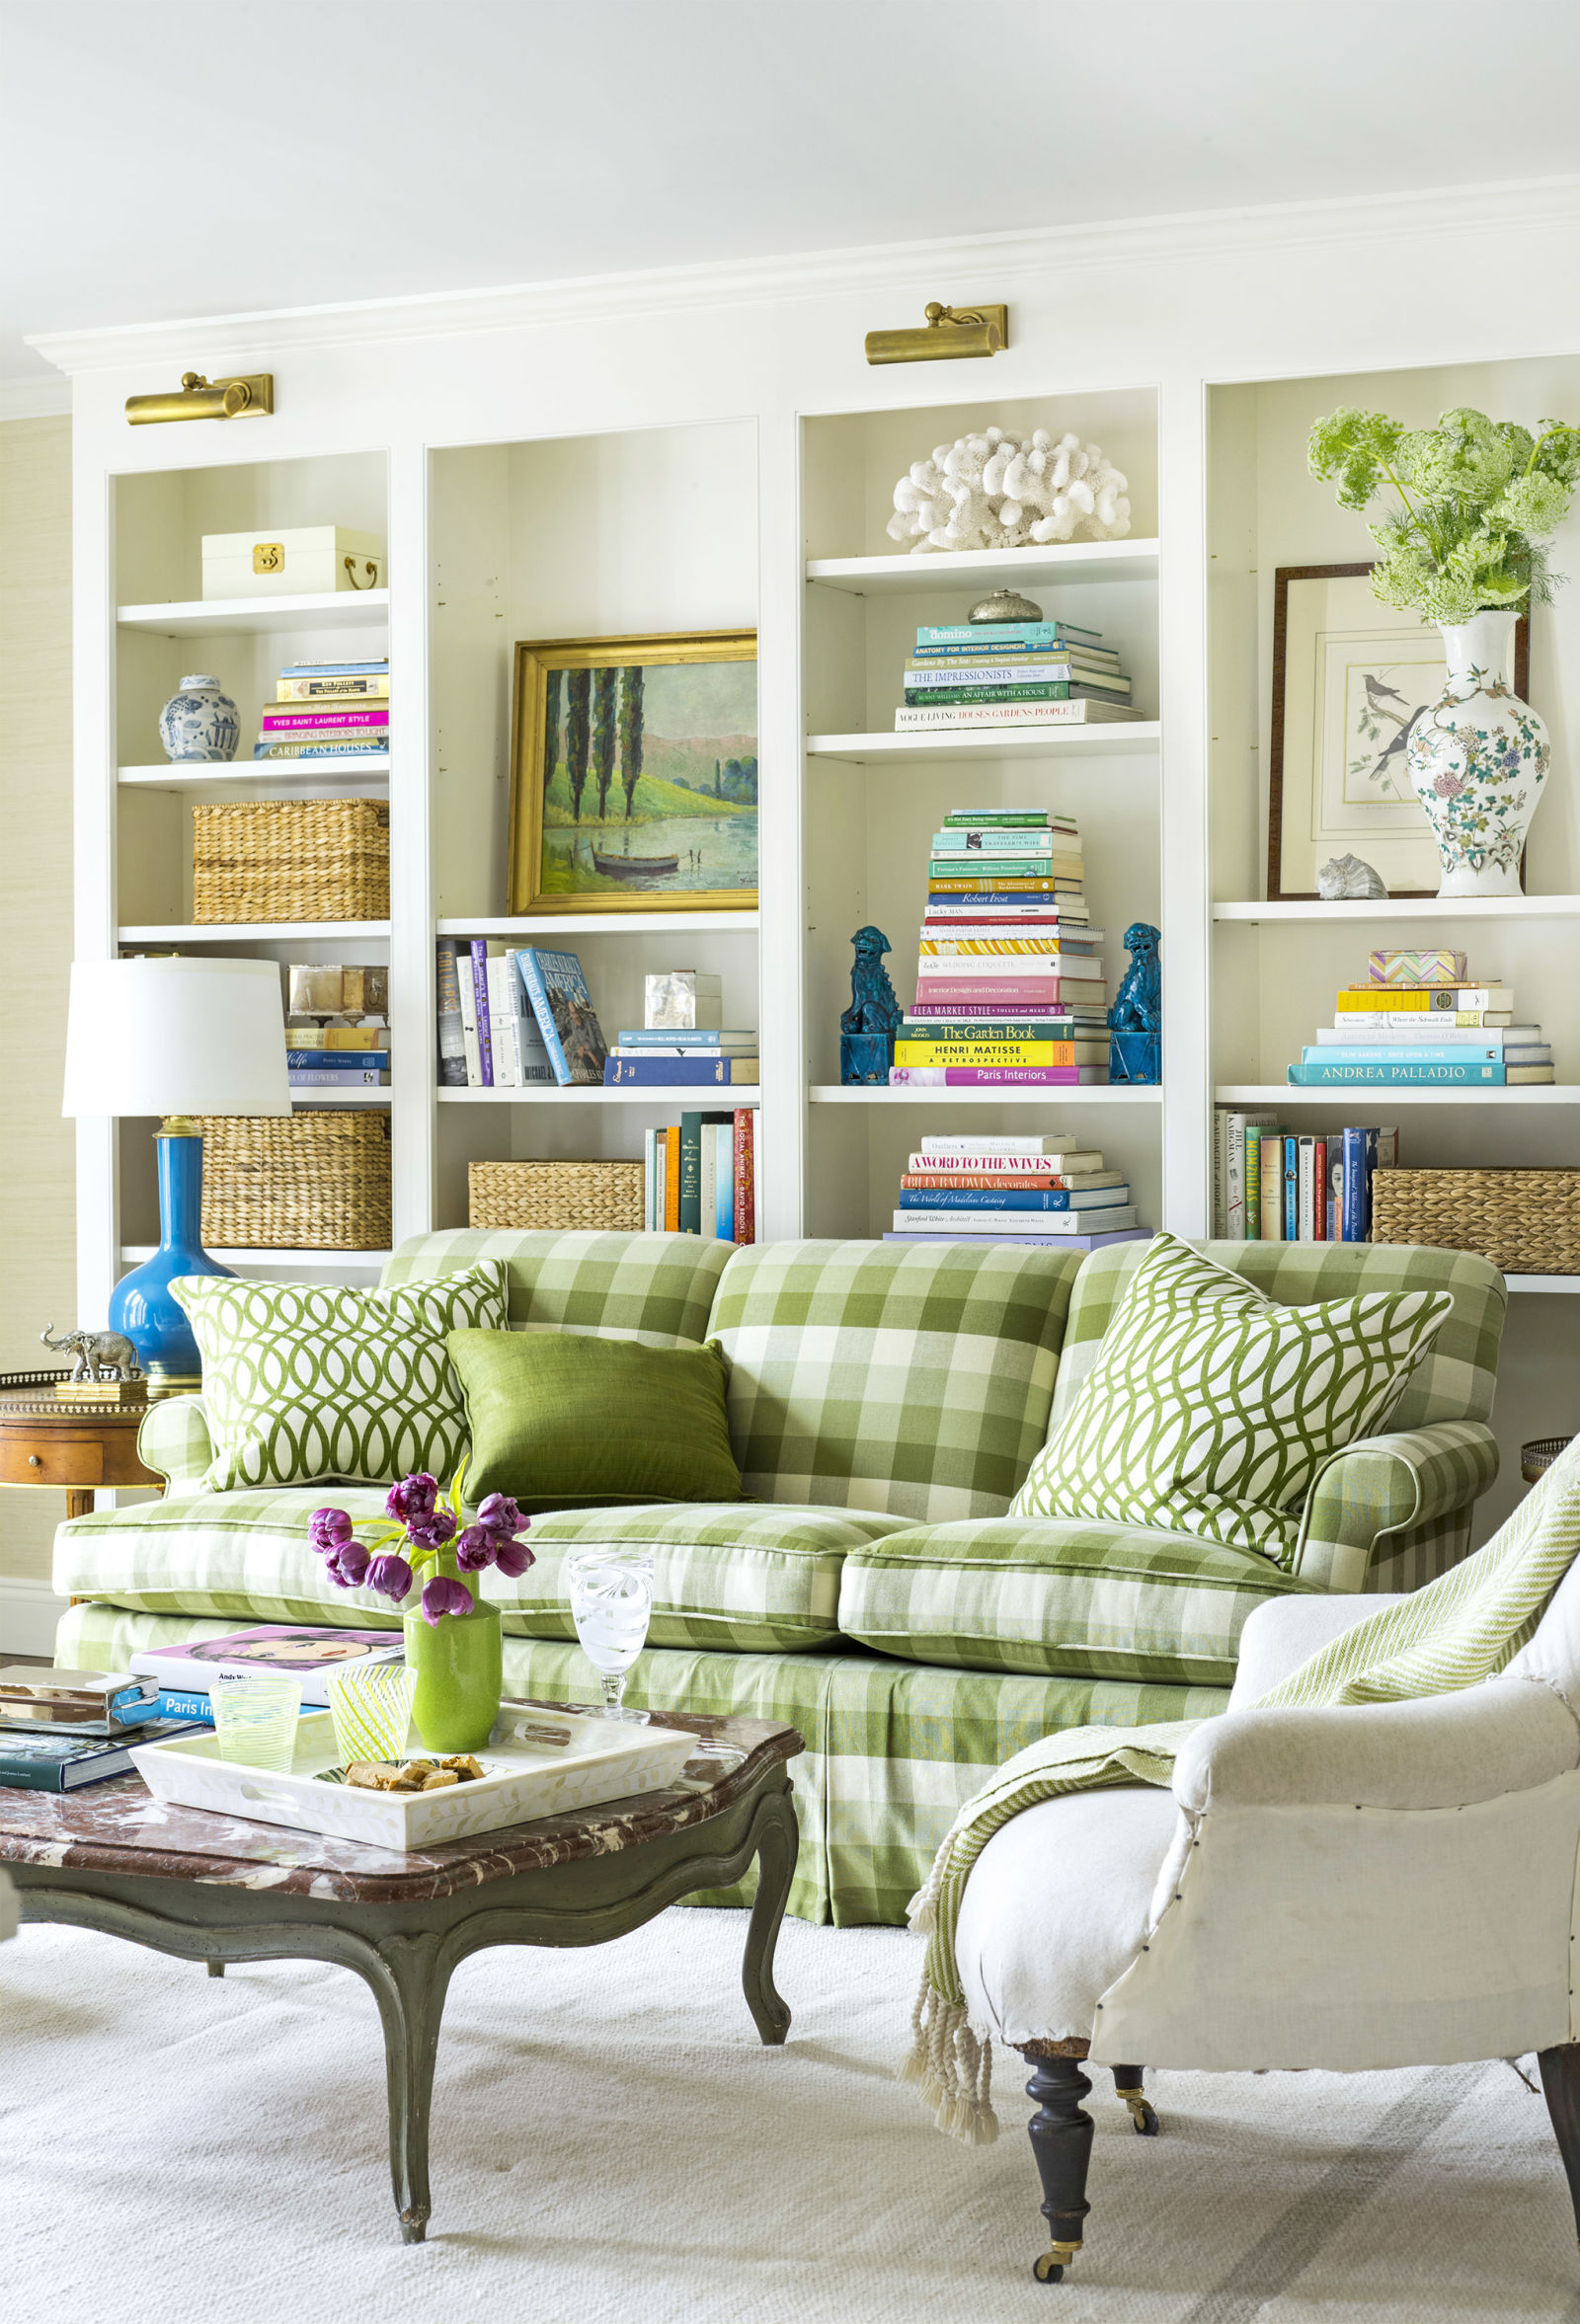 green living room furniture.  Decorating with Green 43 Ideas for Rooms and Home Decor